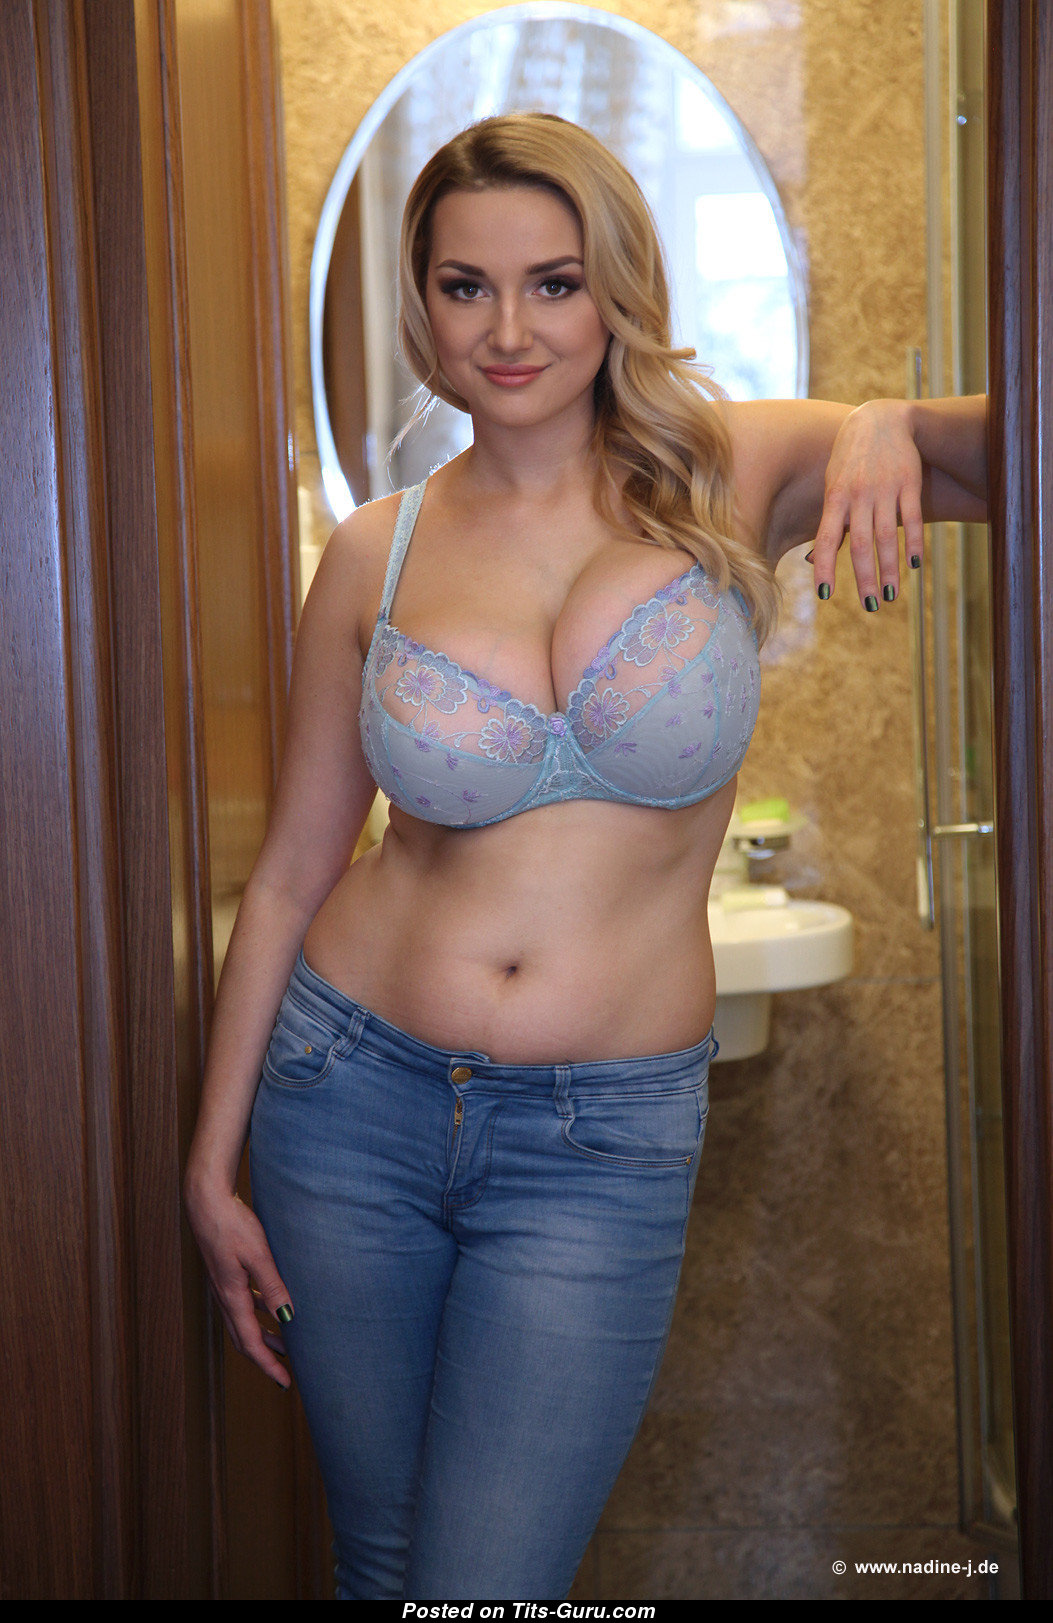 Adorable Adriana Porno adriana - blonde with exposed real great tots porn pix